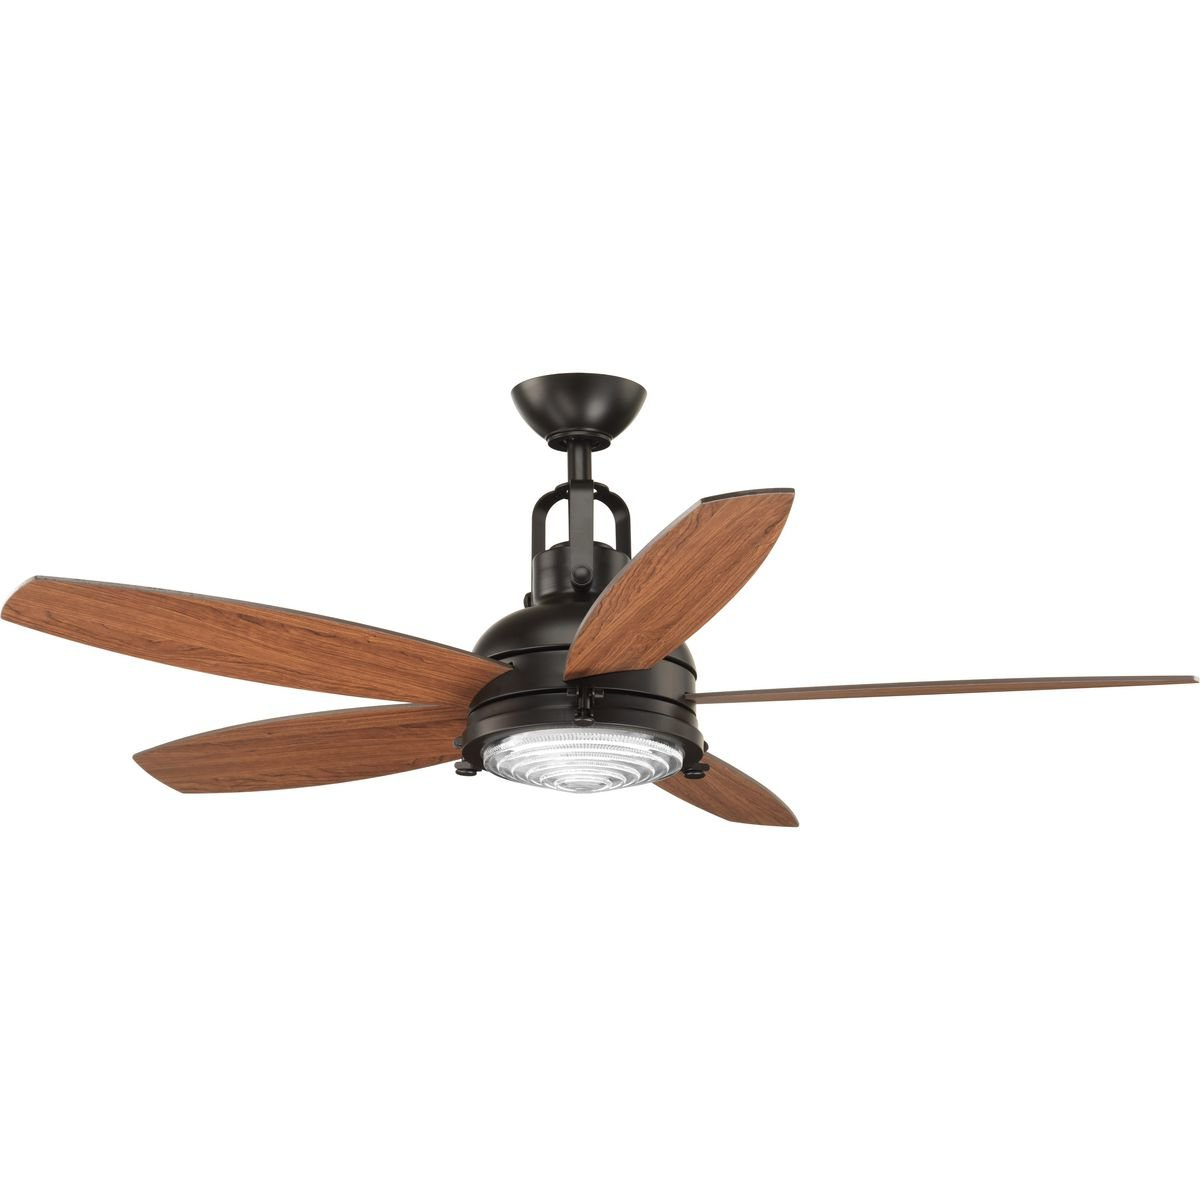 Brown Blades Ceiling Fans (View 15 of 20)